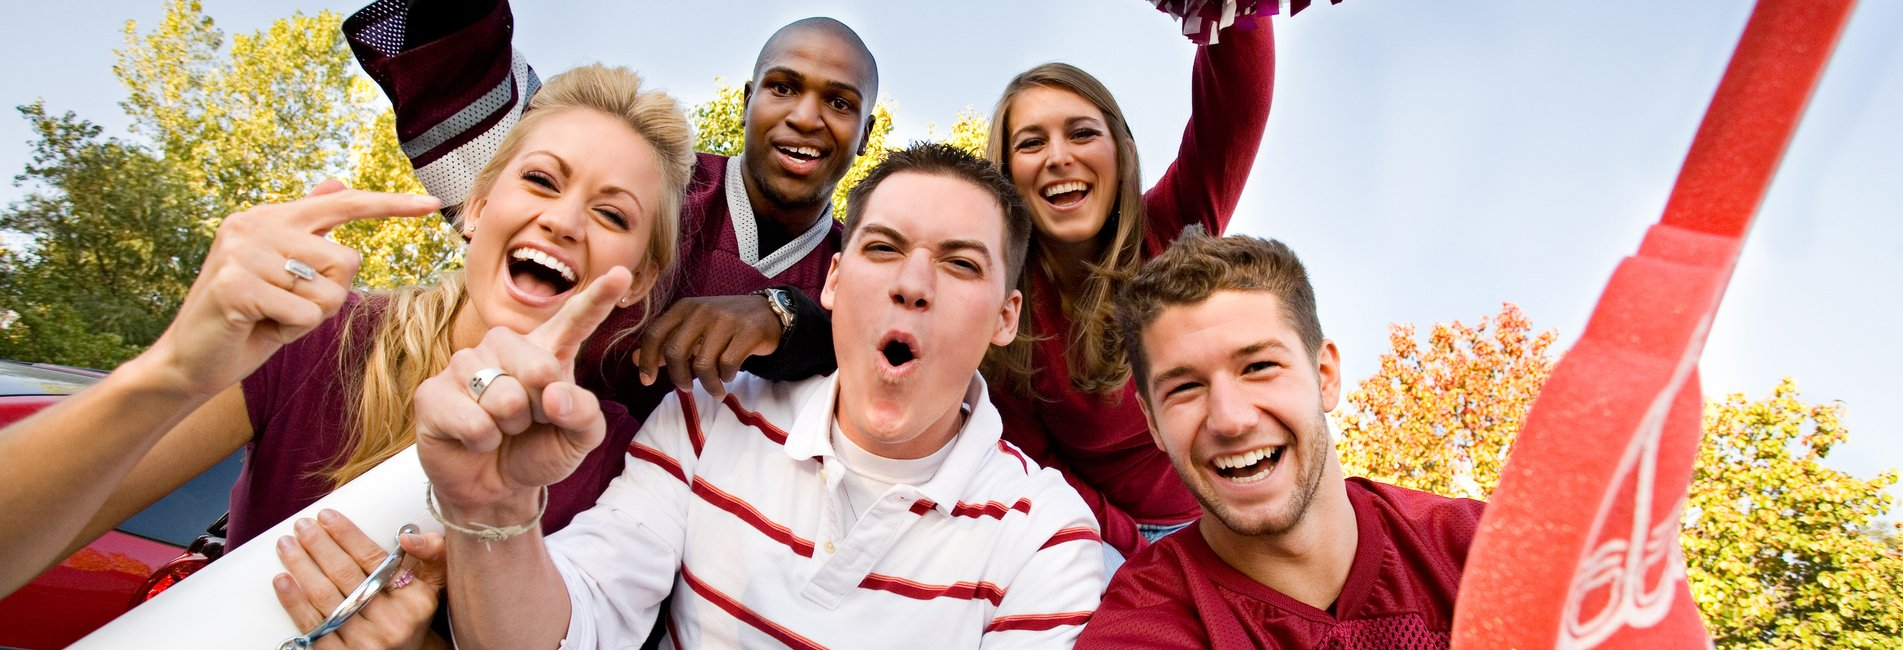 Living A Sober College Life: What Does This Mean? Resurgence - A group of college students is enjoying a home football game while living a sober college life to avoid substance abuse issues and remain in recovery.